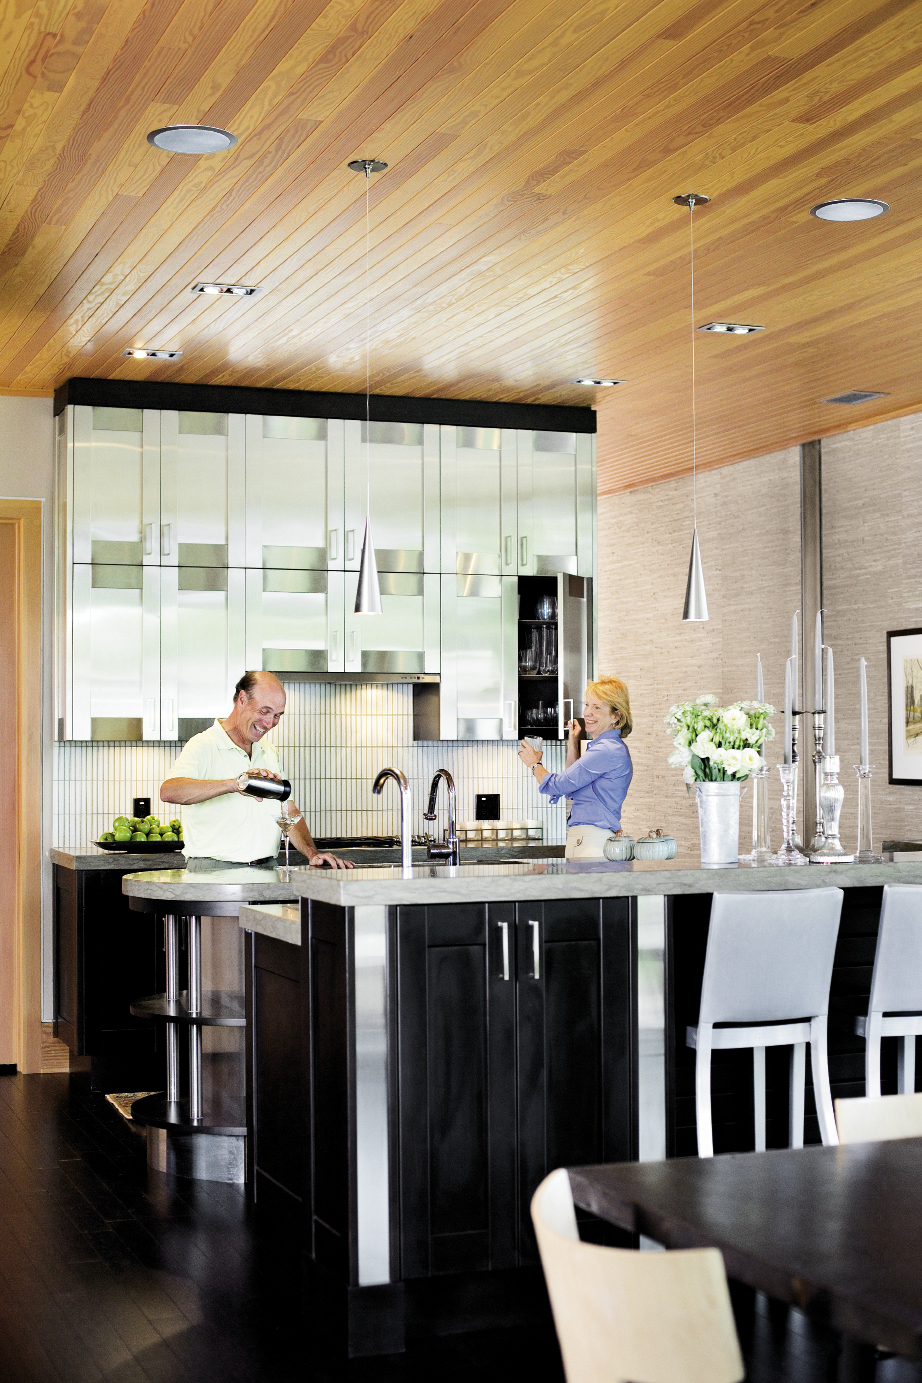 the pair in their open kitchen, anchored by stainless steel upper cabinetry.